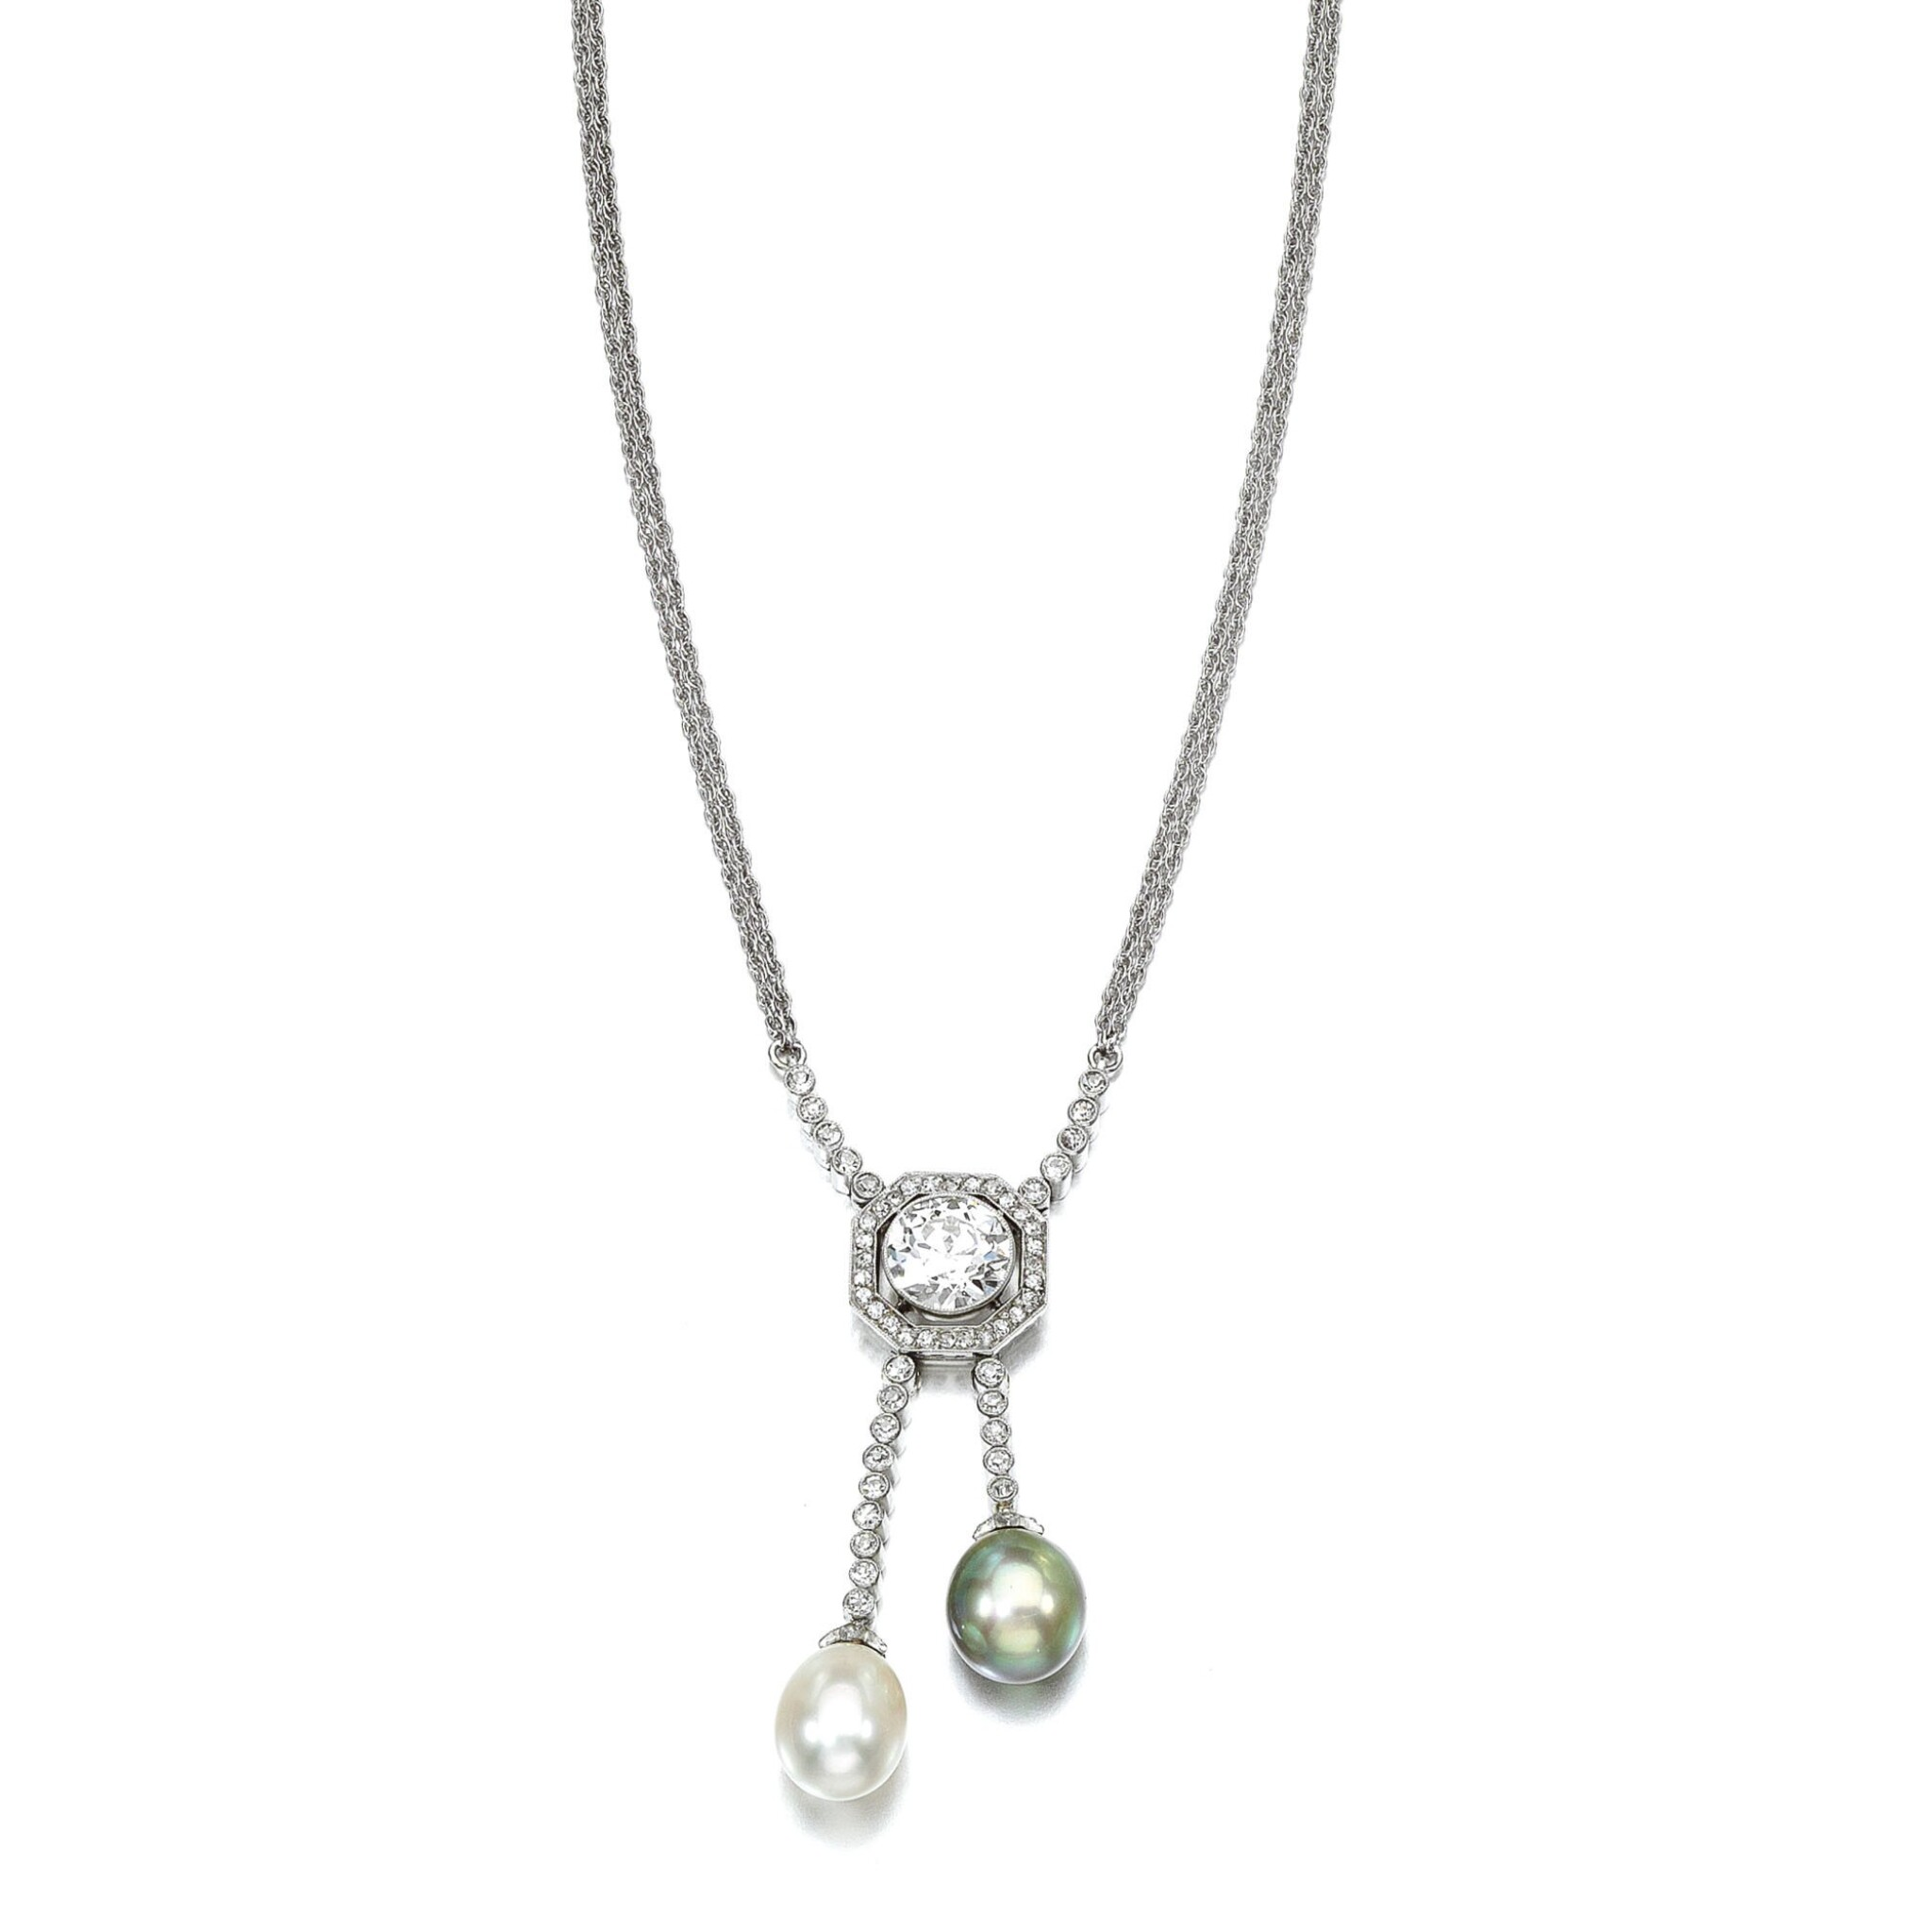 NATURAL PEARL AND DIAMOND PENDANT NECKLACE, CIRCA 1910 AND LATER